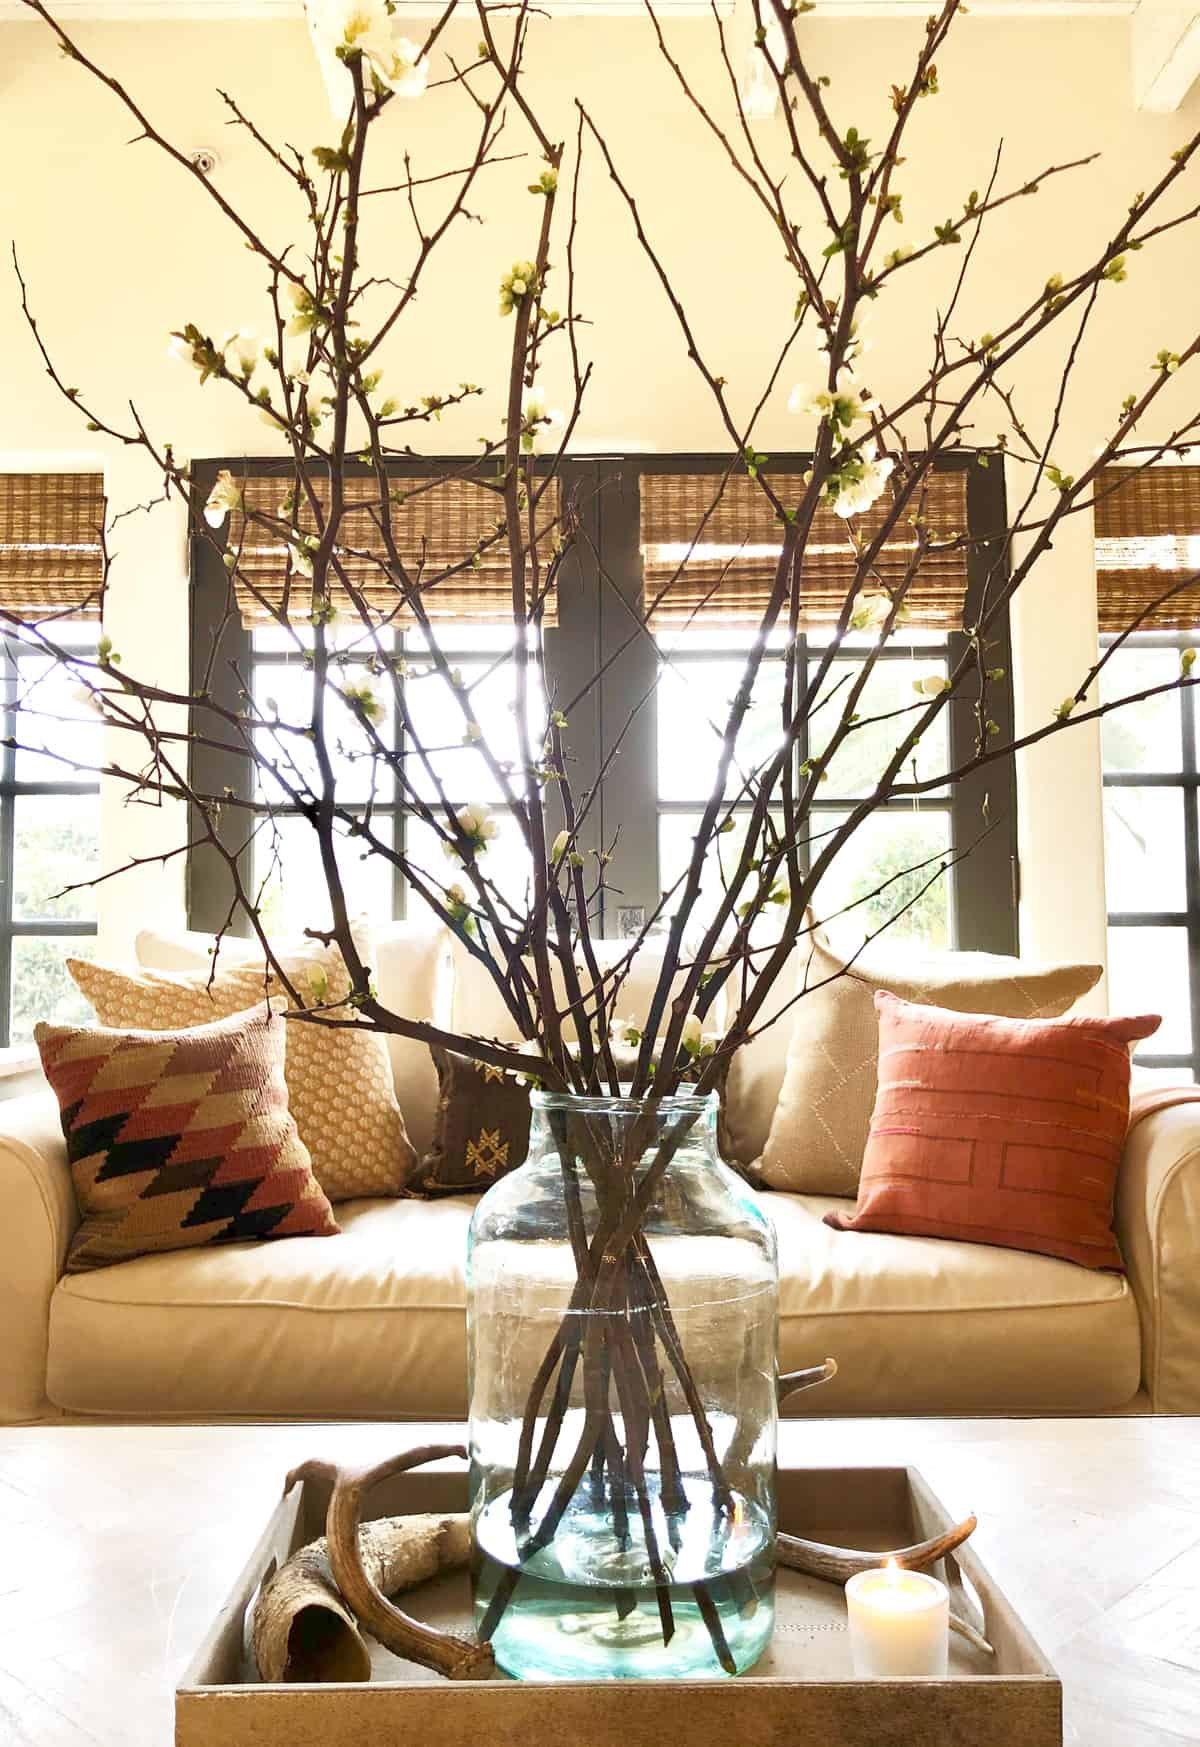 coffee table with tray and flowering branches